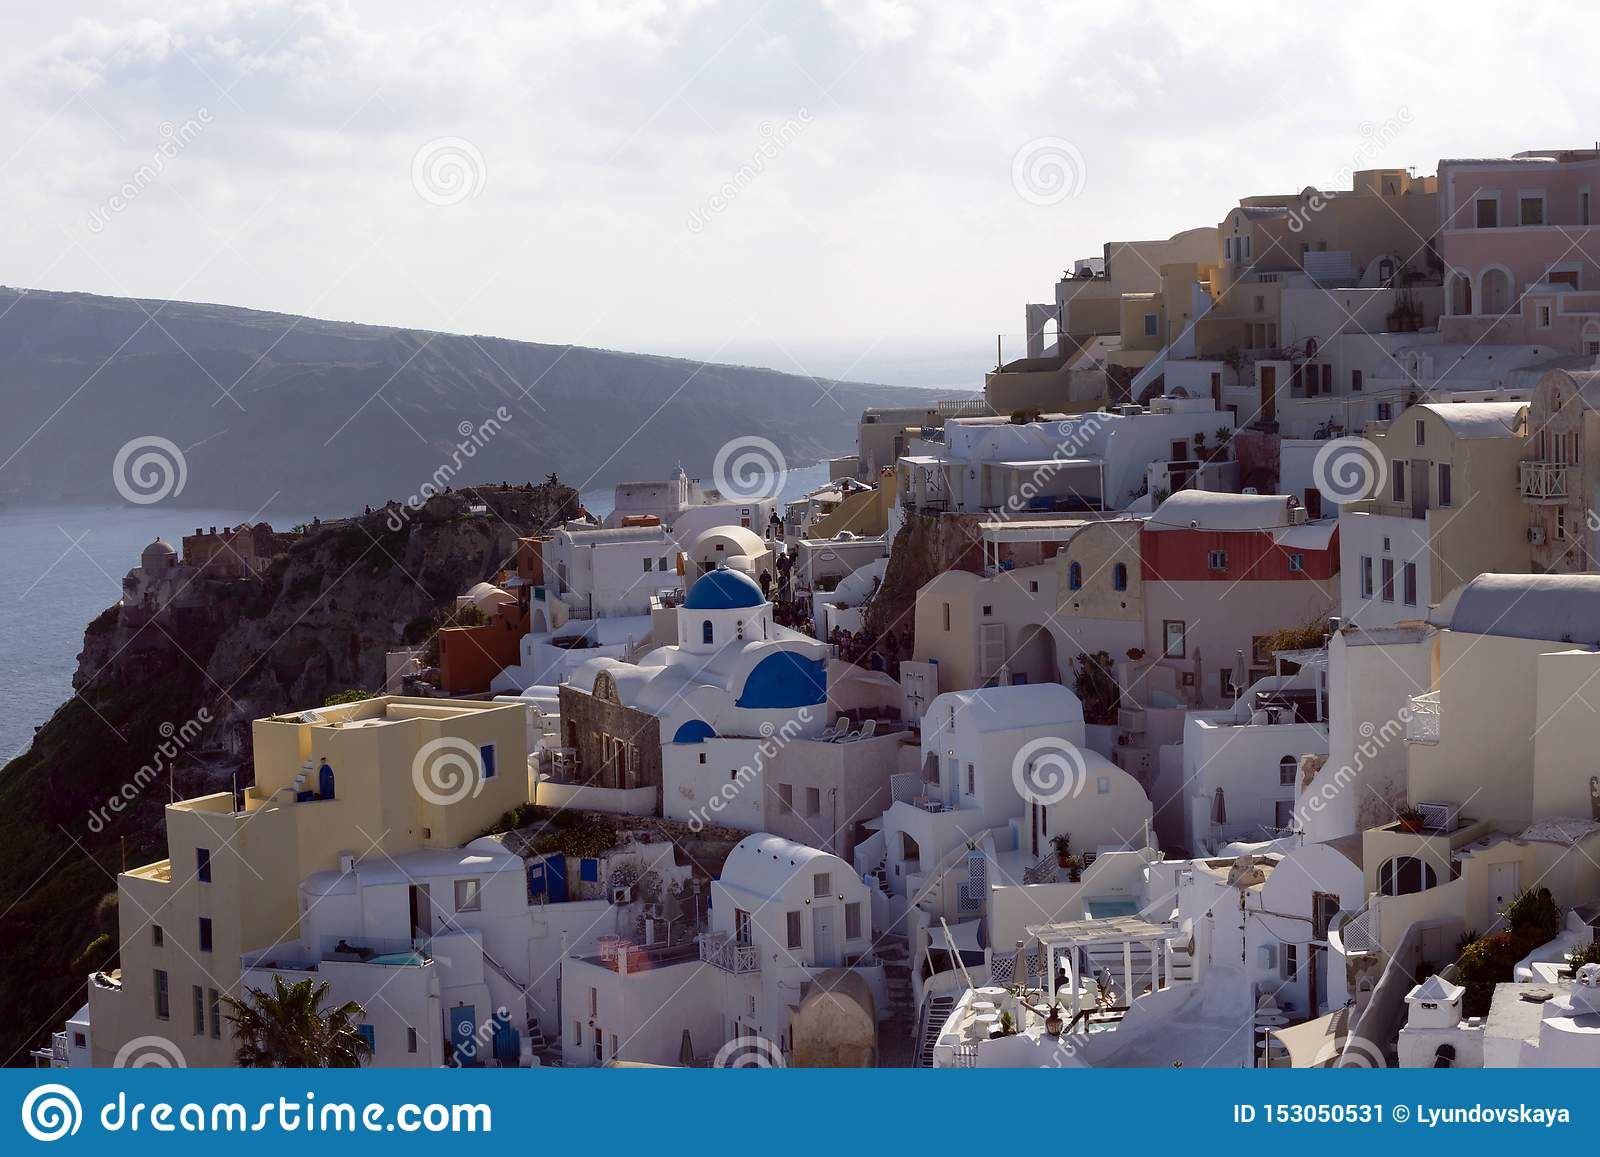 Beautiful island of Santorini, Greece. Traditional white greek houses against the backdrop of the sea. The city of Oia on the